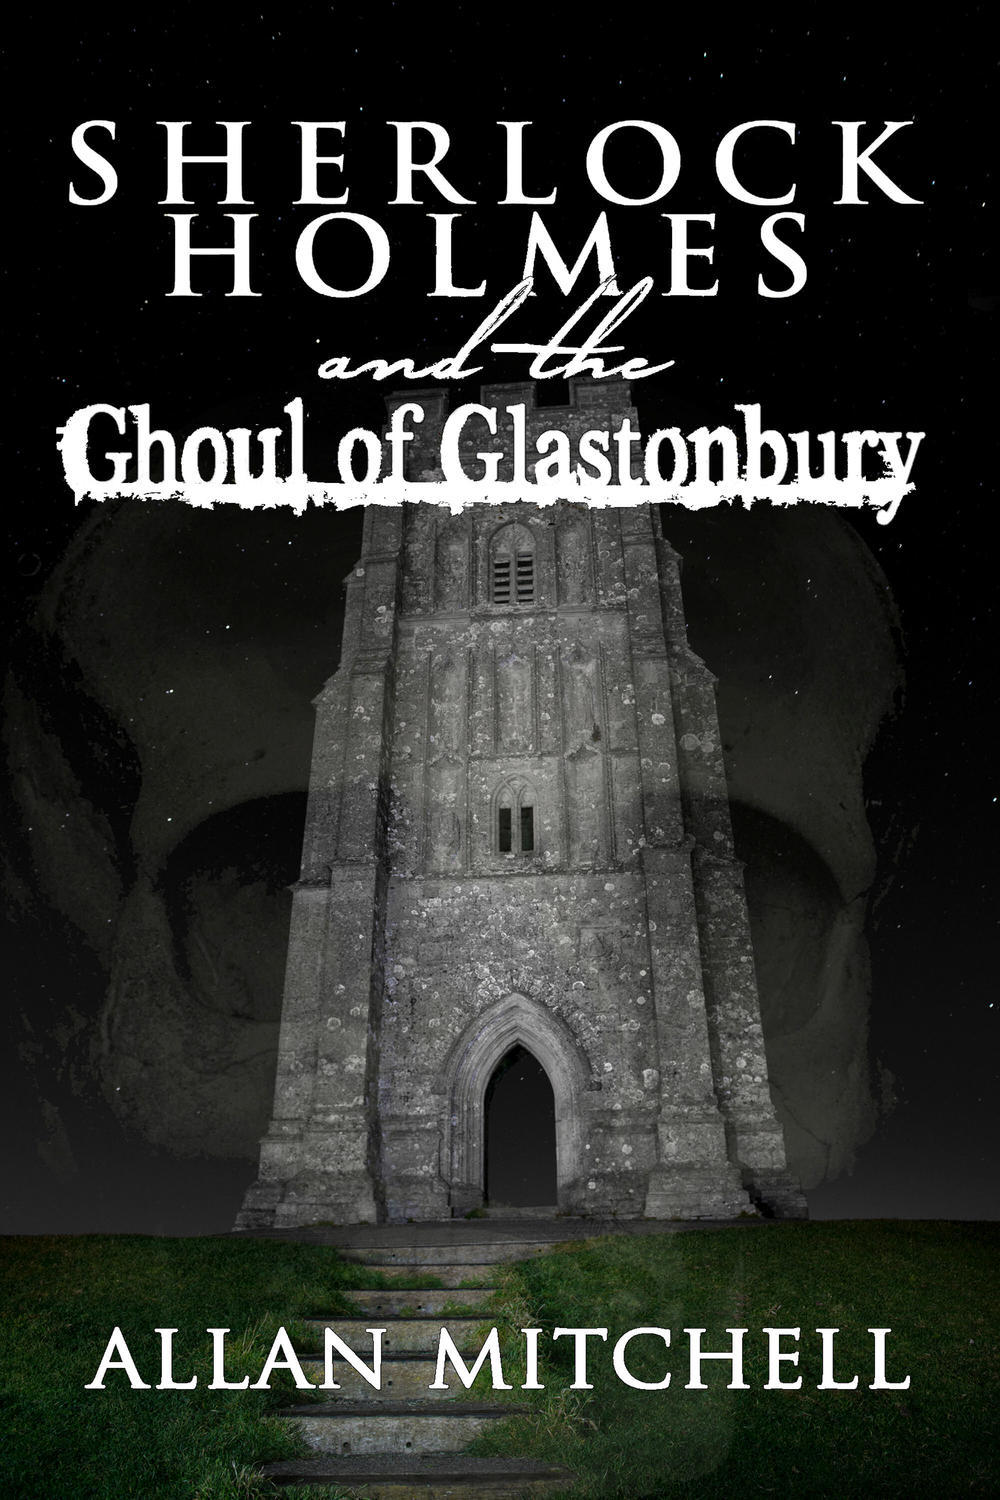 Mitchell, Allan - Sherlock Holmes and the Ghoul of Glastonbury, ebook